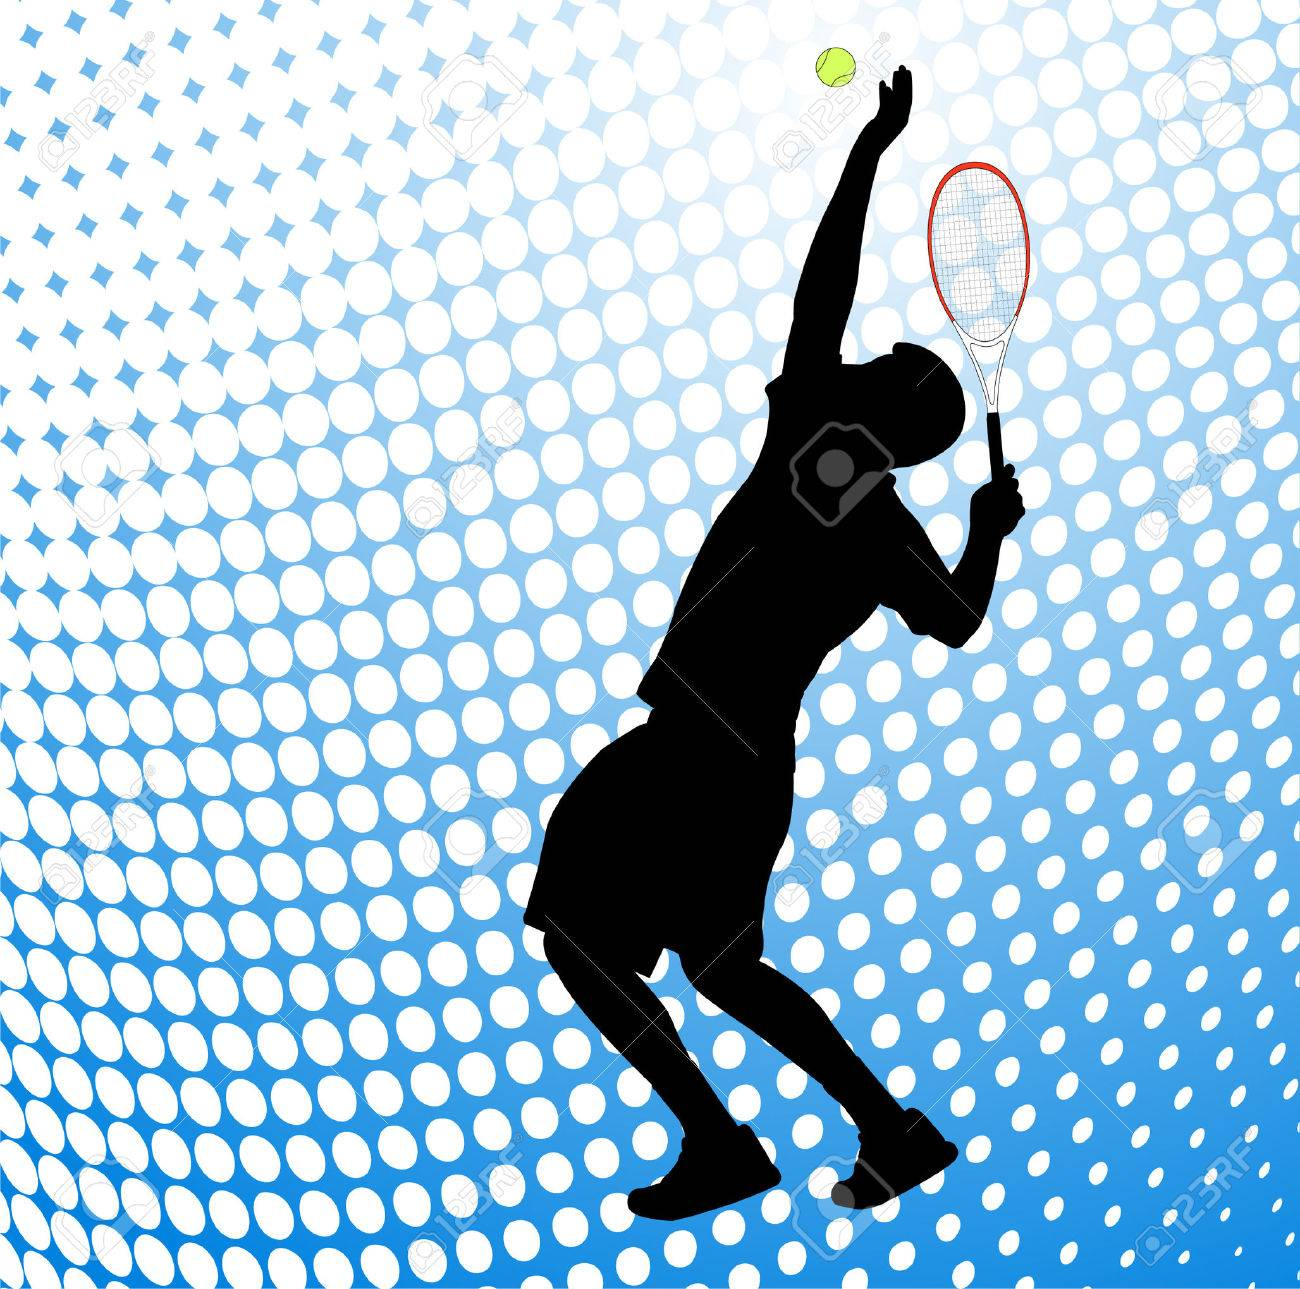 tennis player silhouette on the halftone background Stock Vector - 6660401